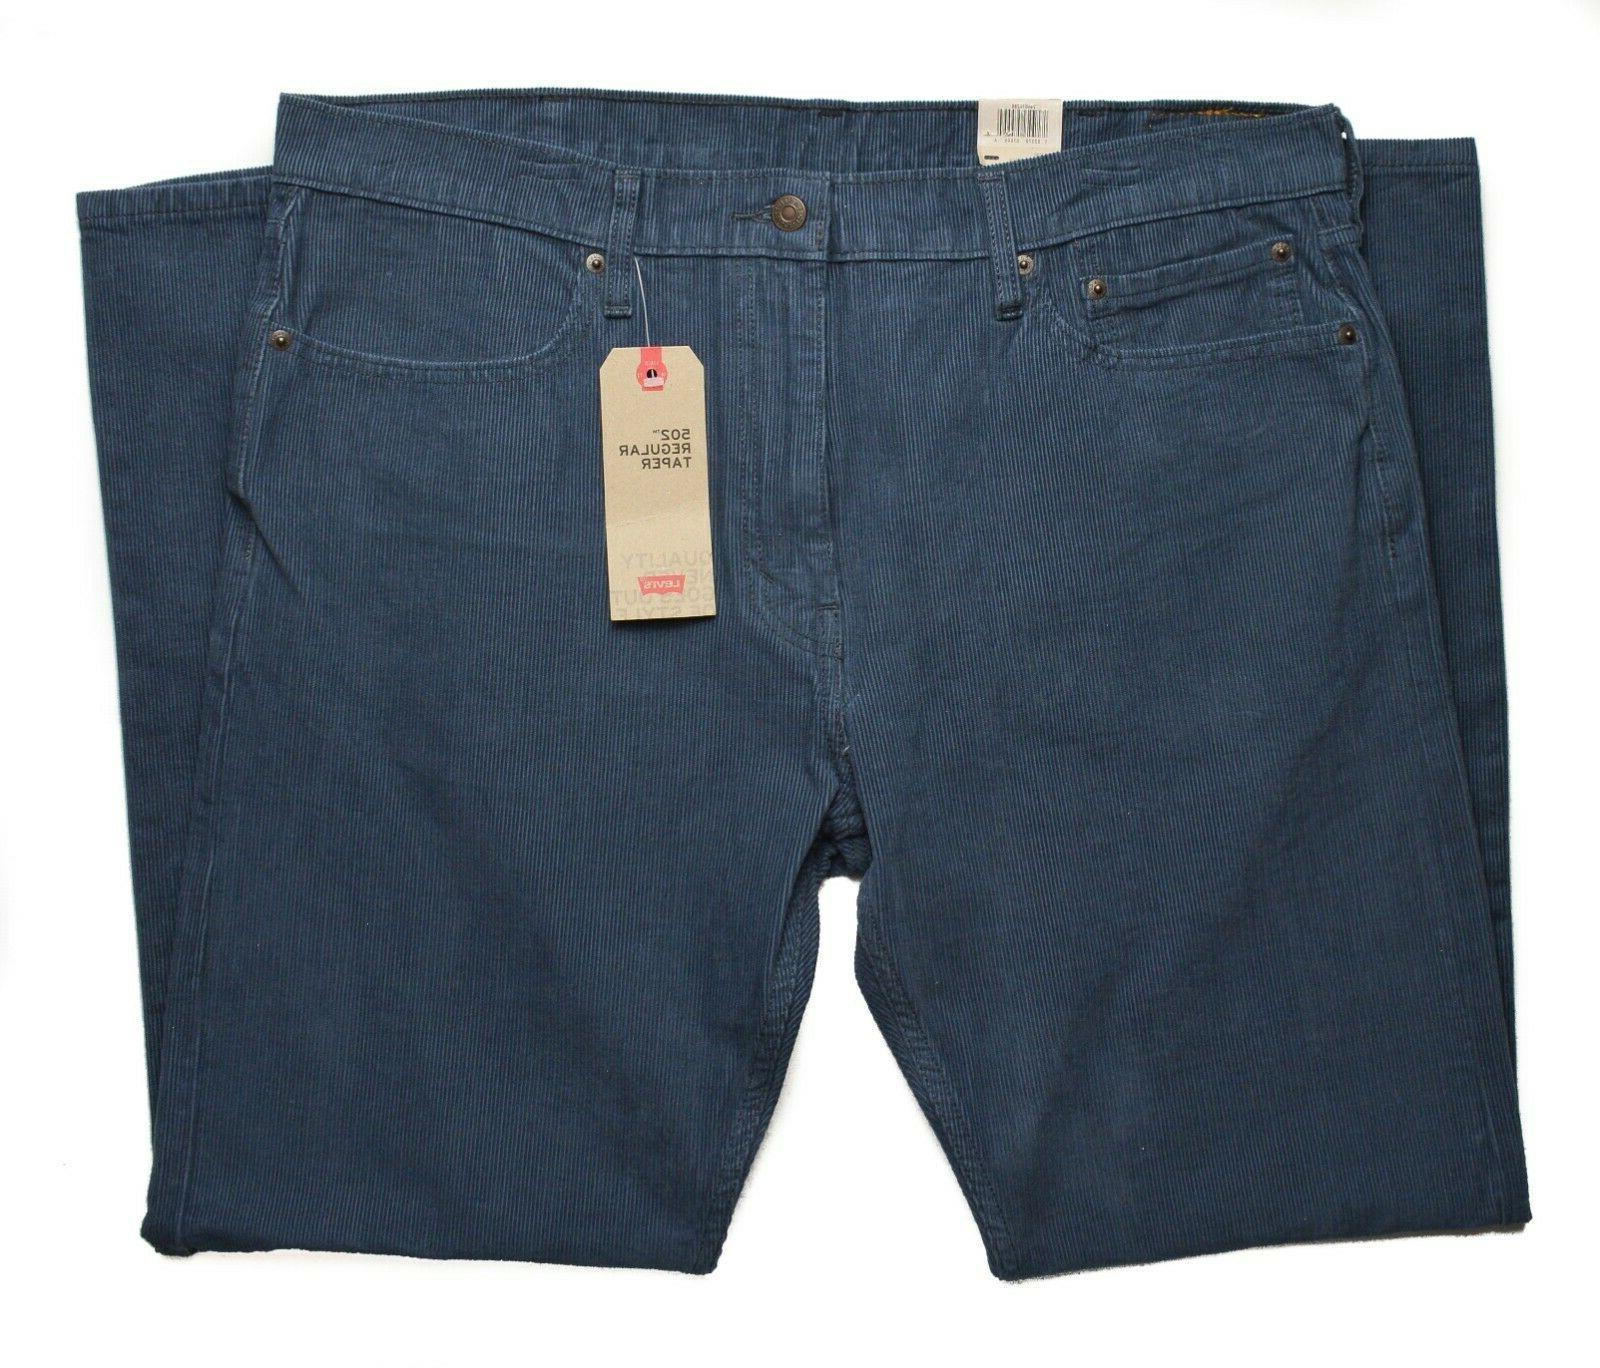 Levi's Size 38x32 Regular 502